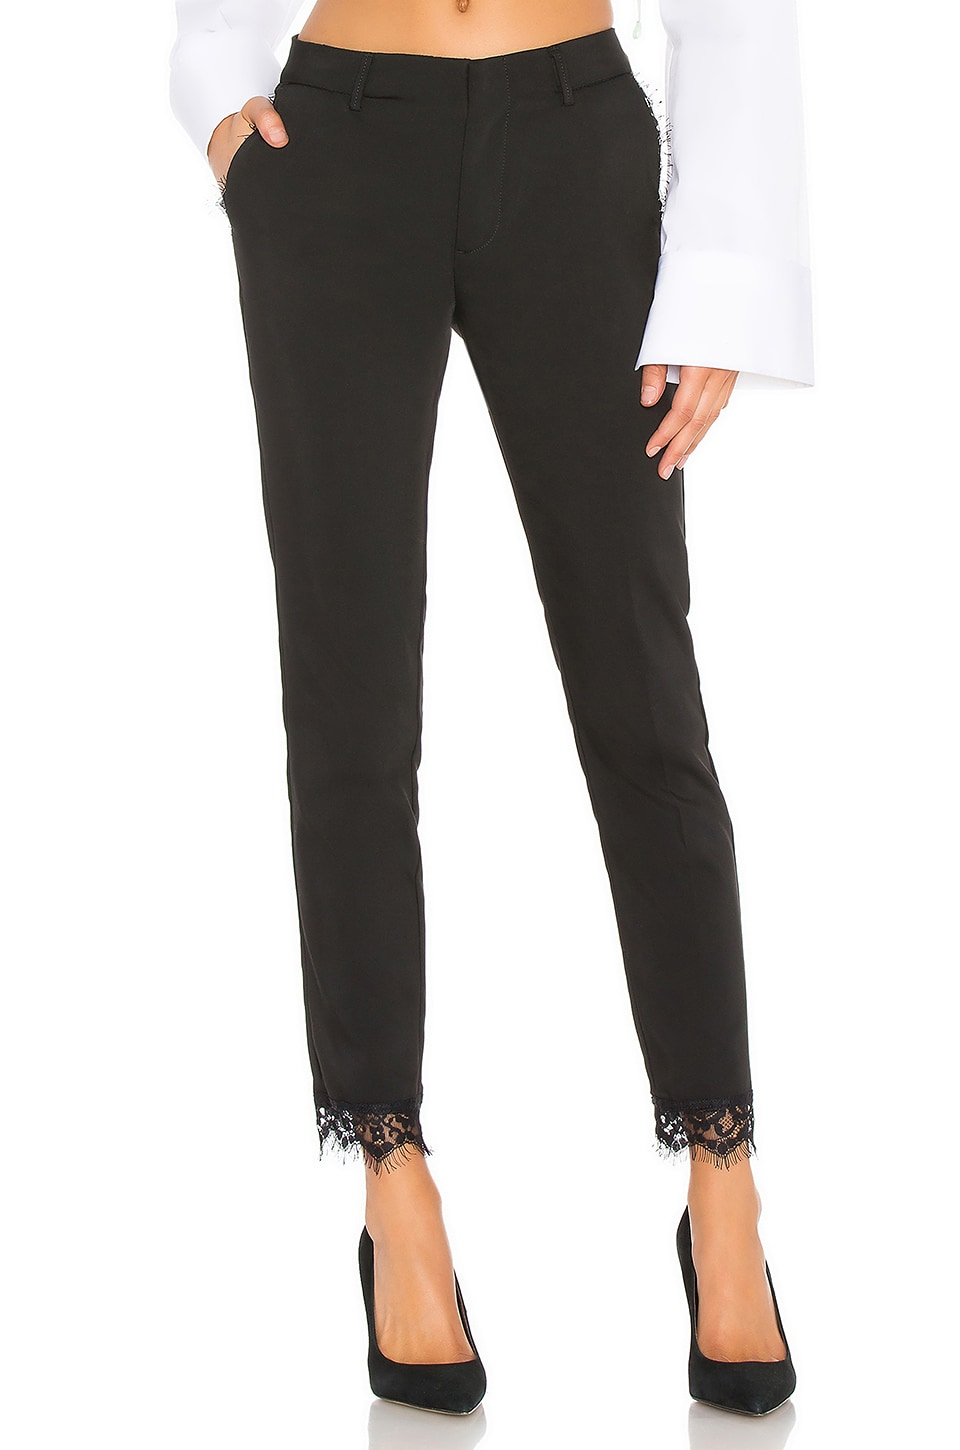 Reiko Lizzy Lace Pant in Black